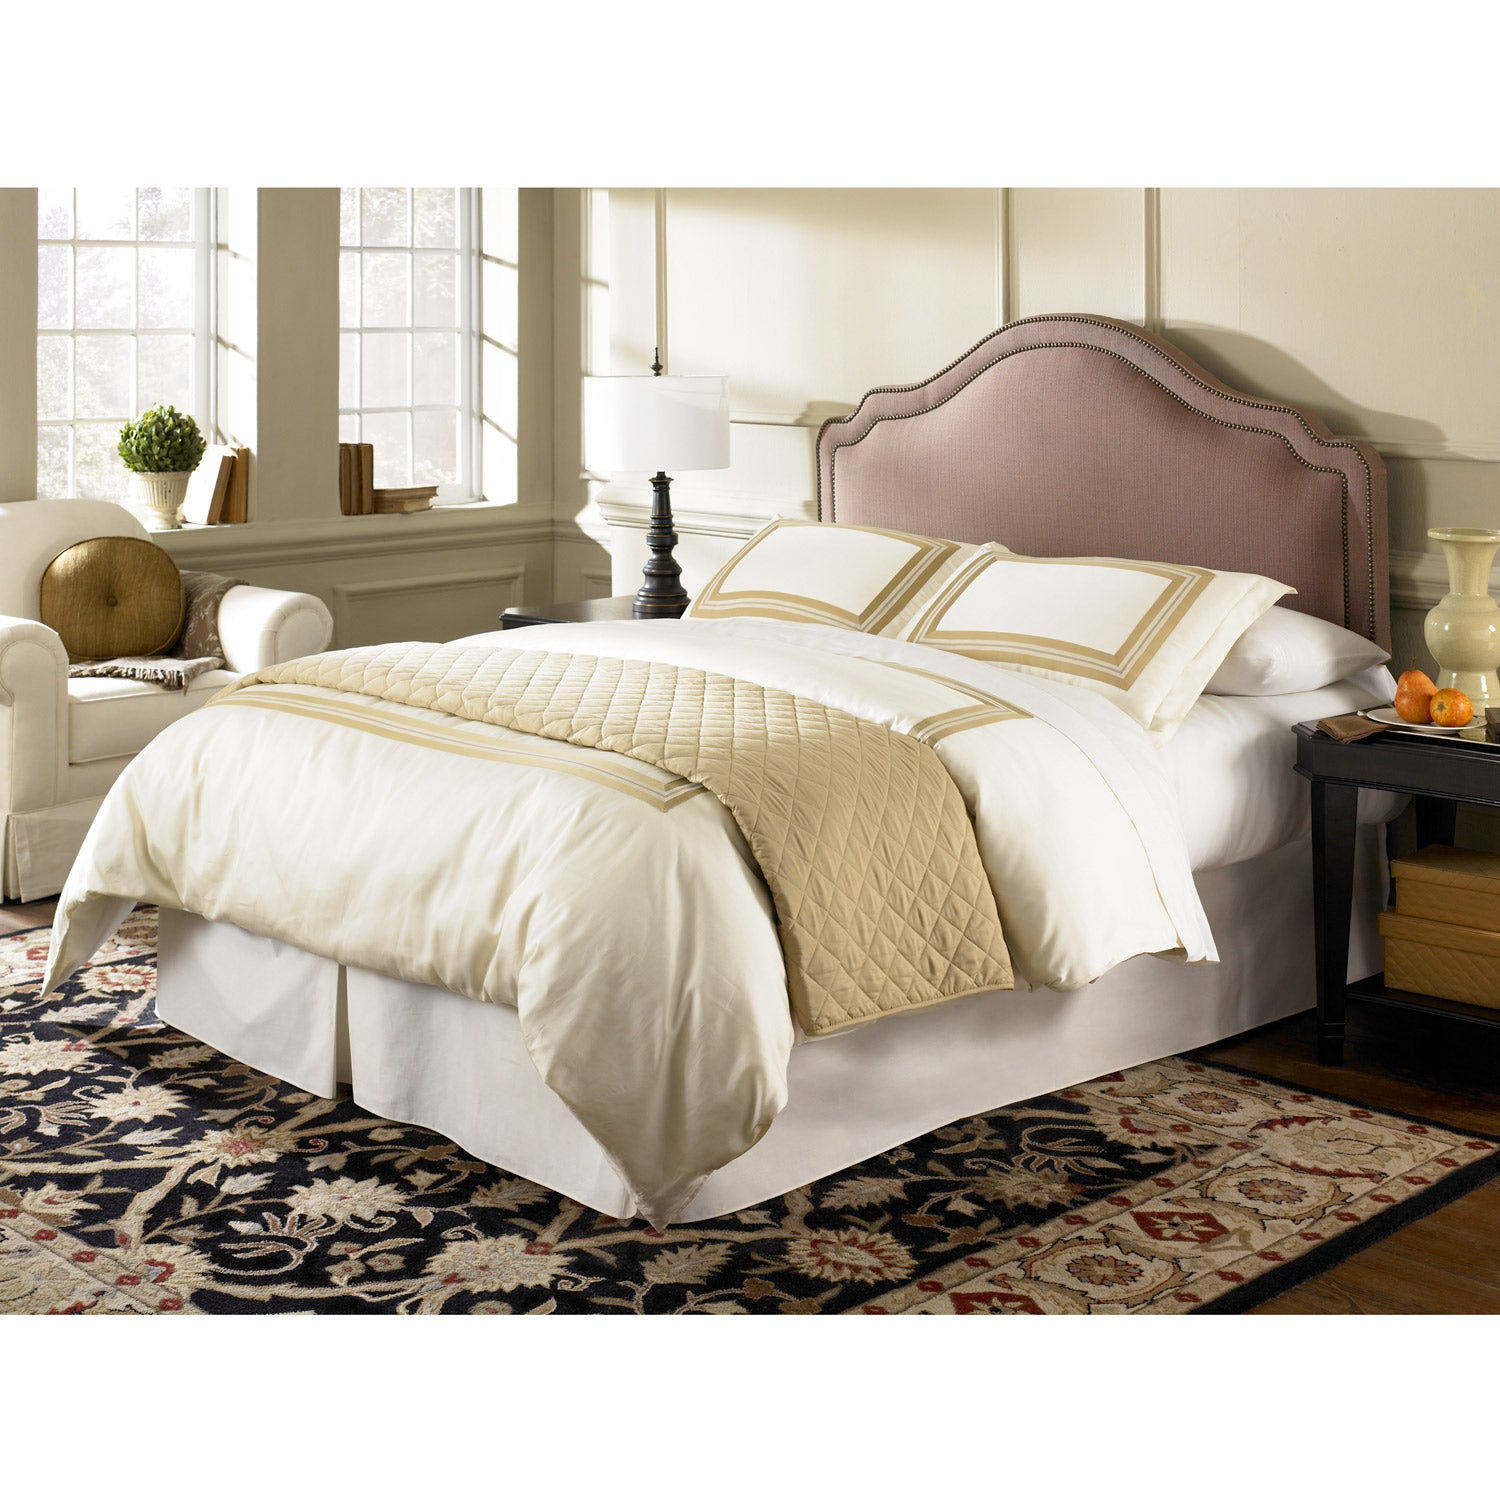 Bed headboard upholstered - Fashion Bed Saint Marie Queen Full Size Upholstered Headboard